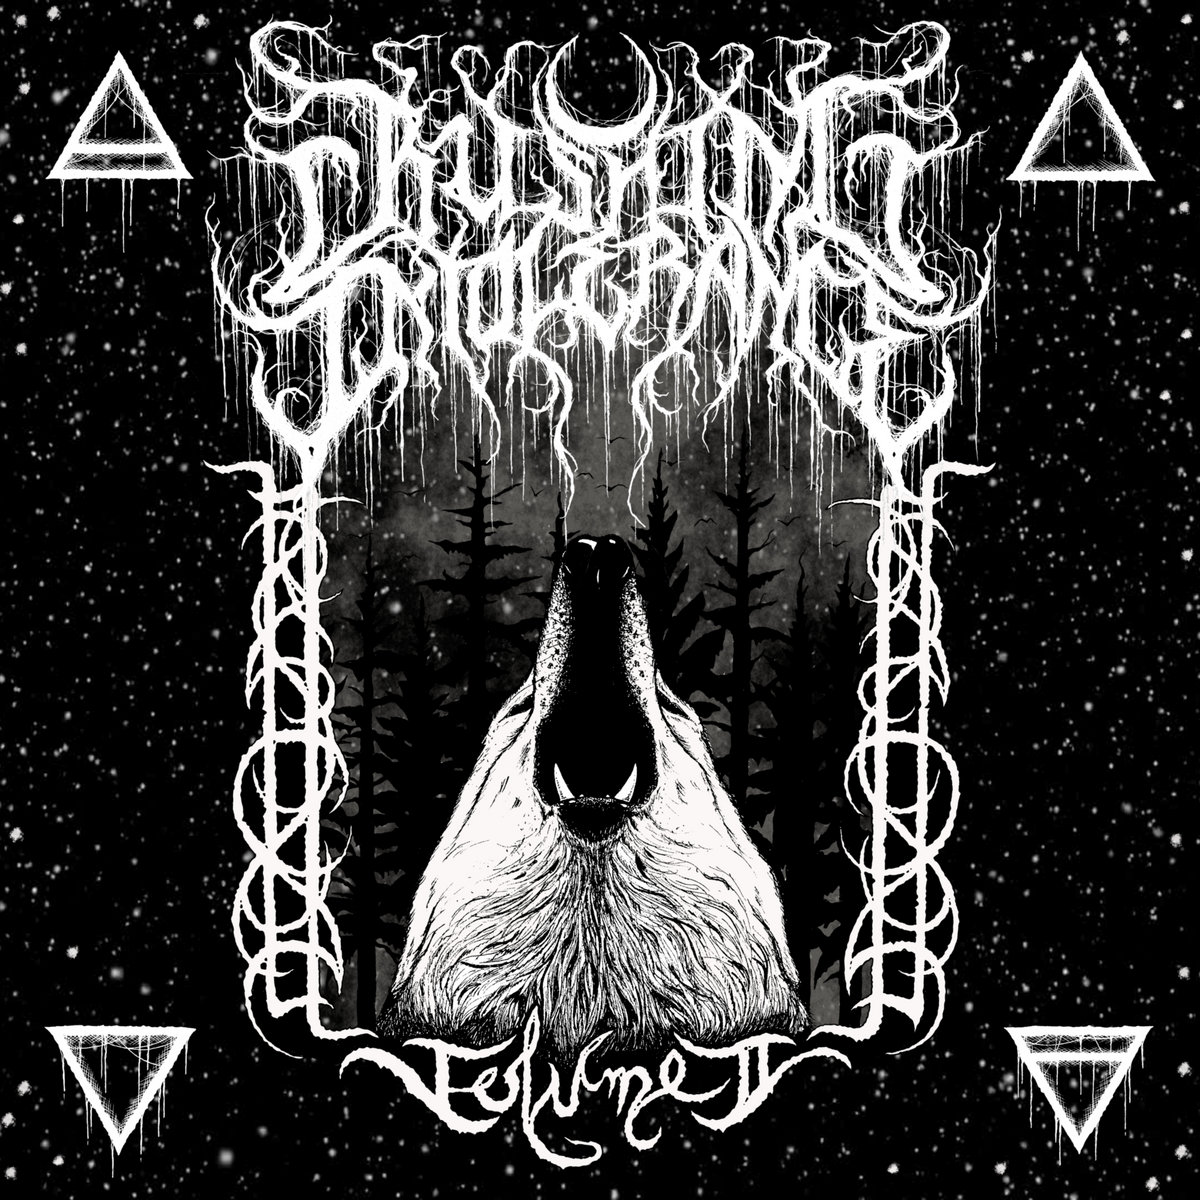 Black Metal Alliance - Crushing Intolerance Volume 2